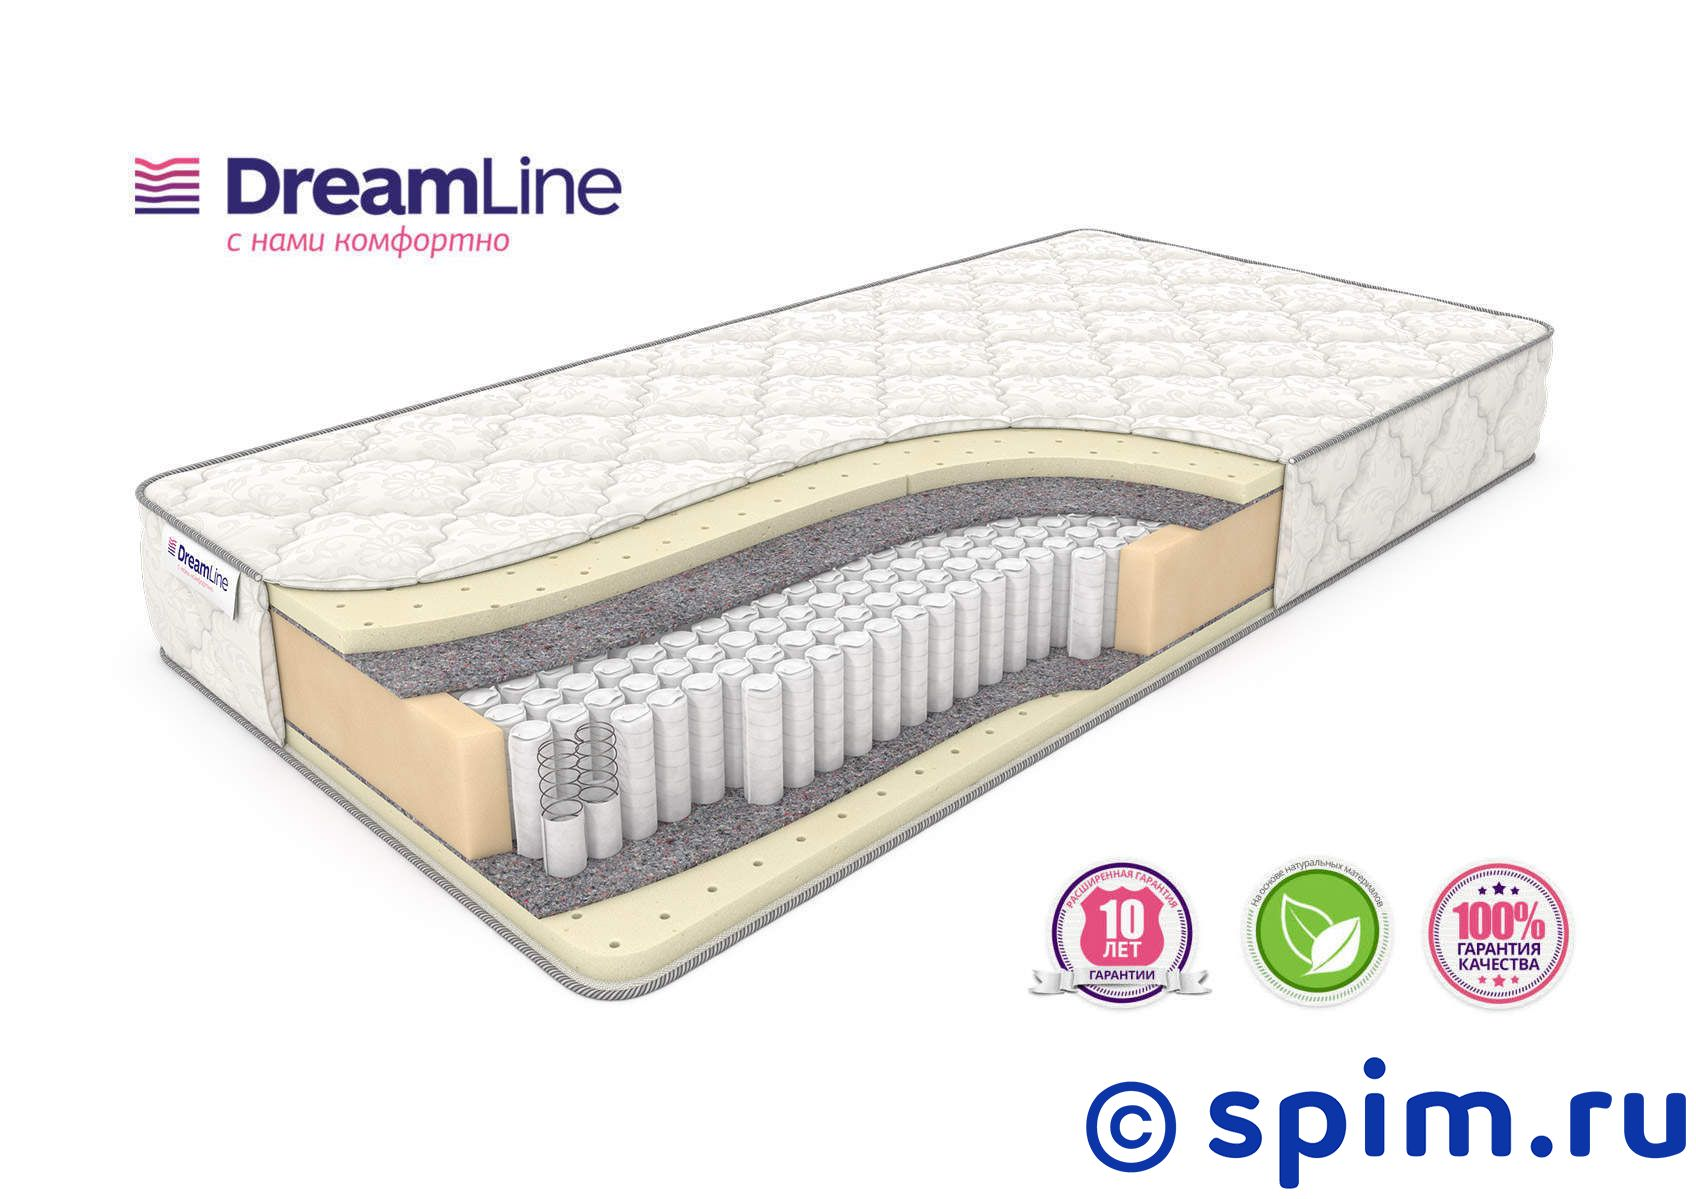 Матрас DreamLine Sleep 2 S1000 120х200 см матрас dreamline memory dream s 1000 180x190